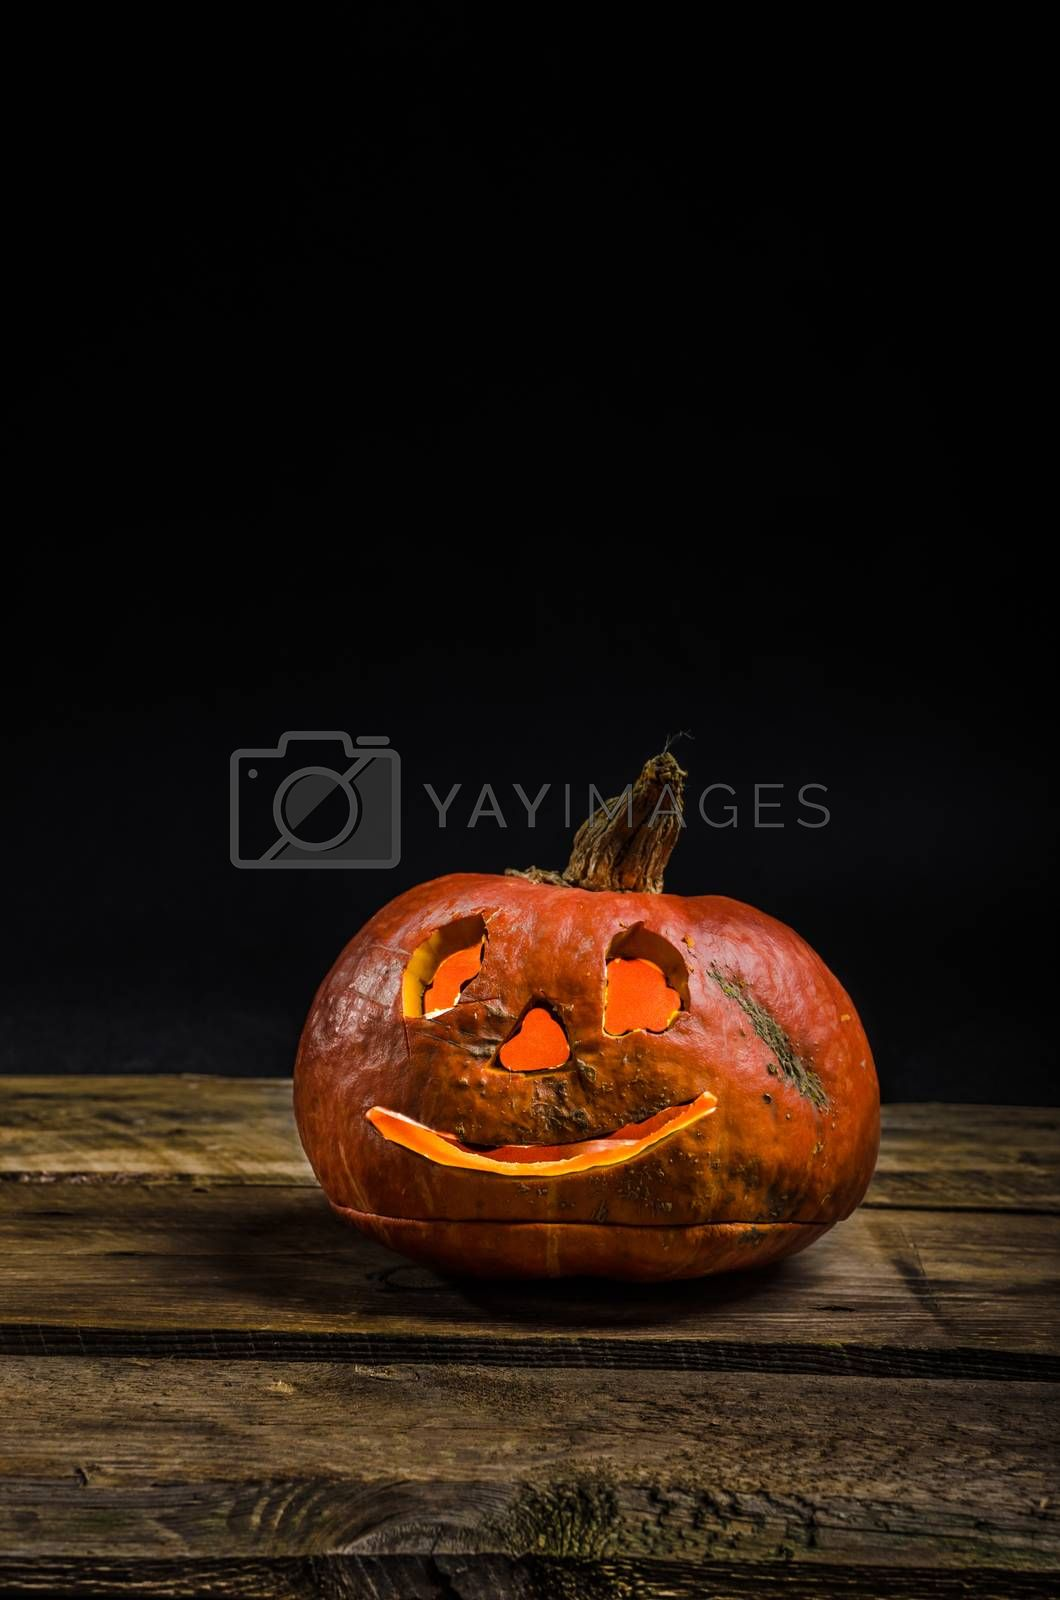 Halloween pumpkin, black background, simple picture on wood table